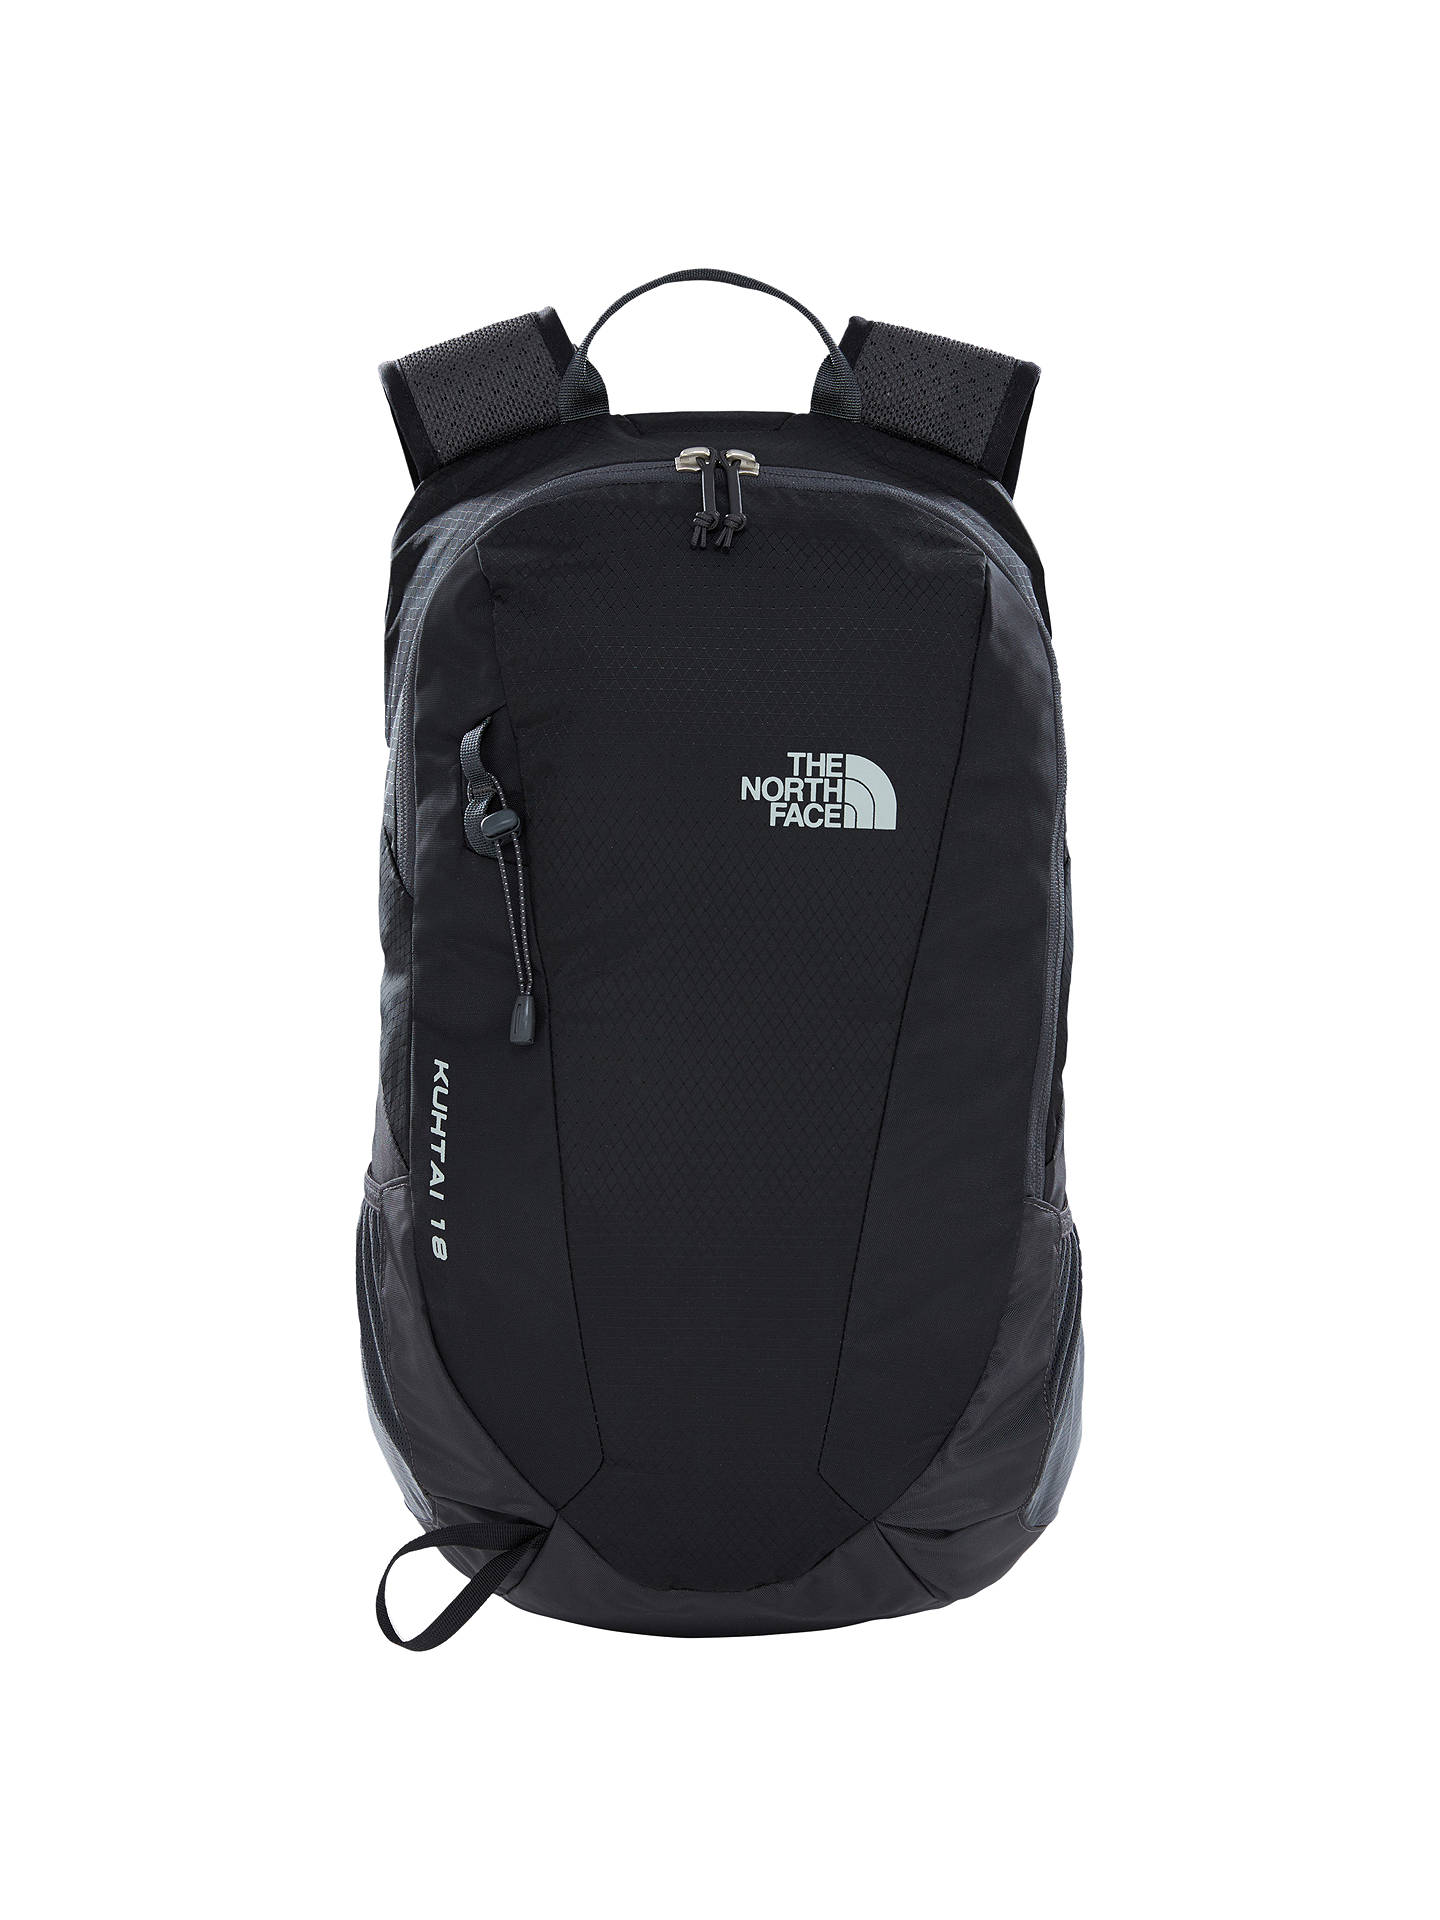 f73d793db The North Face Kuhtai 18 Backpack, Black at John Lewis & Partners